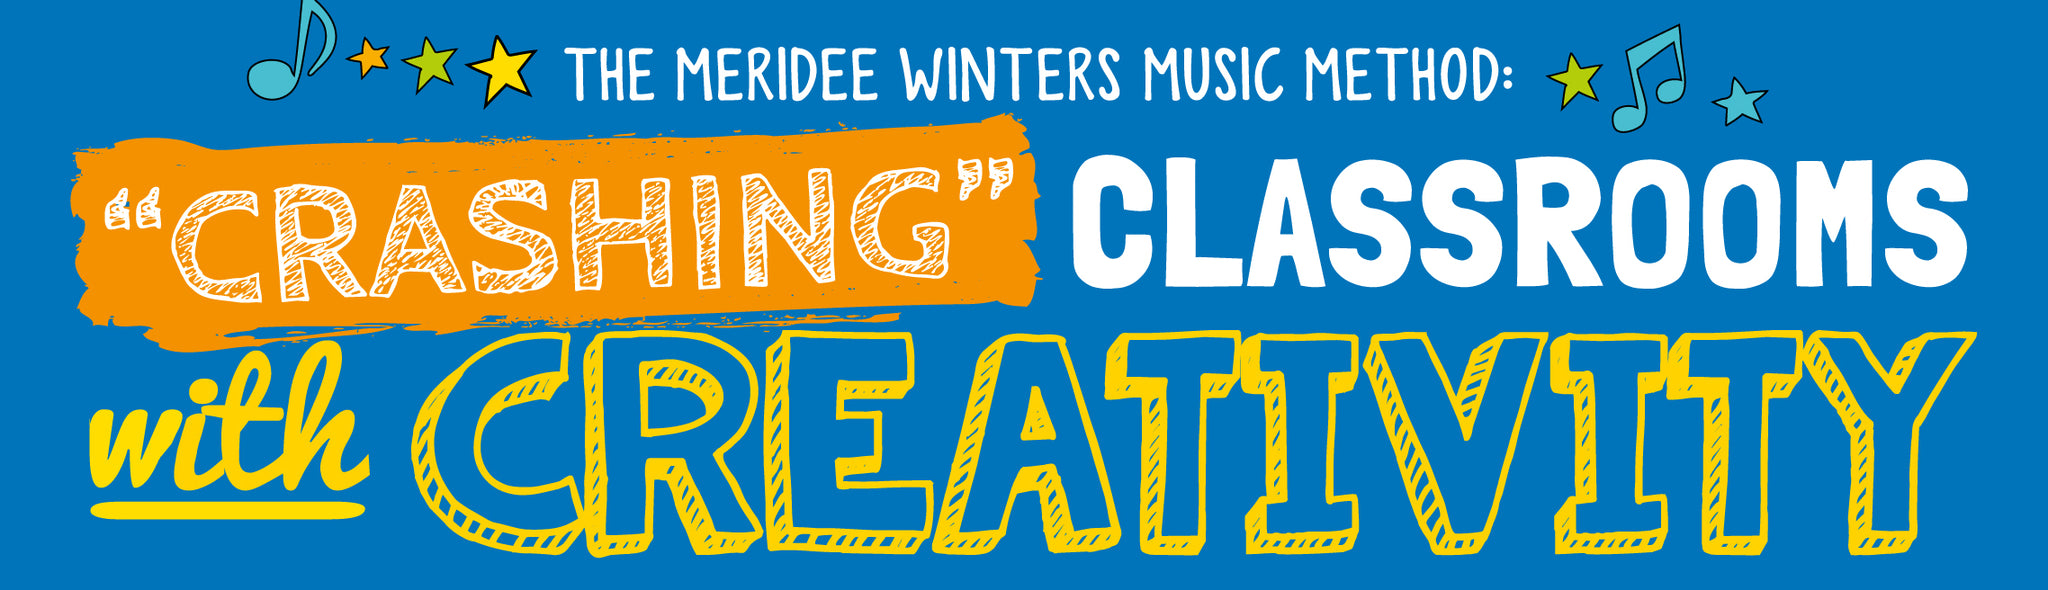 meridee winters music method in the classroom